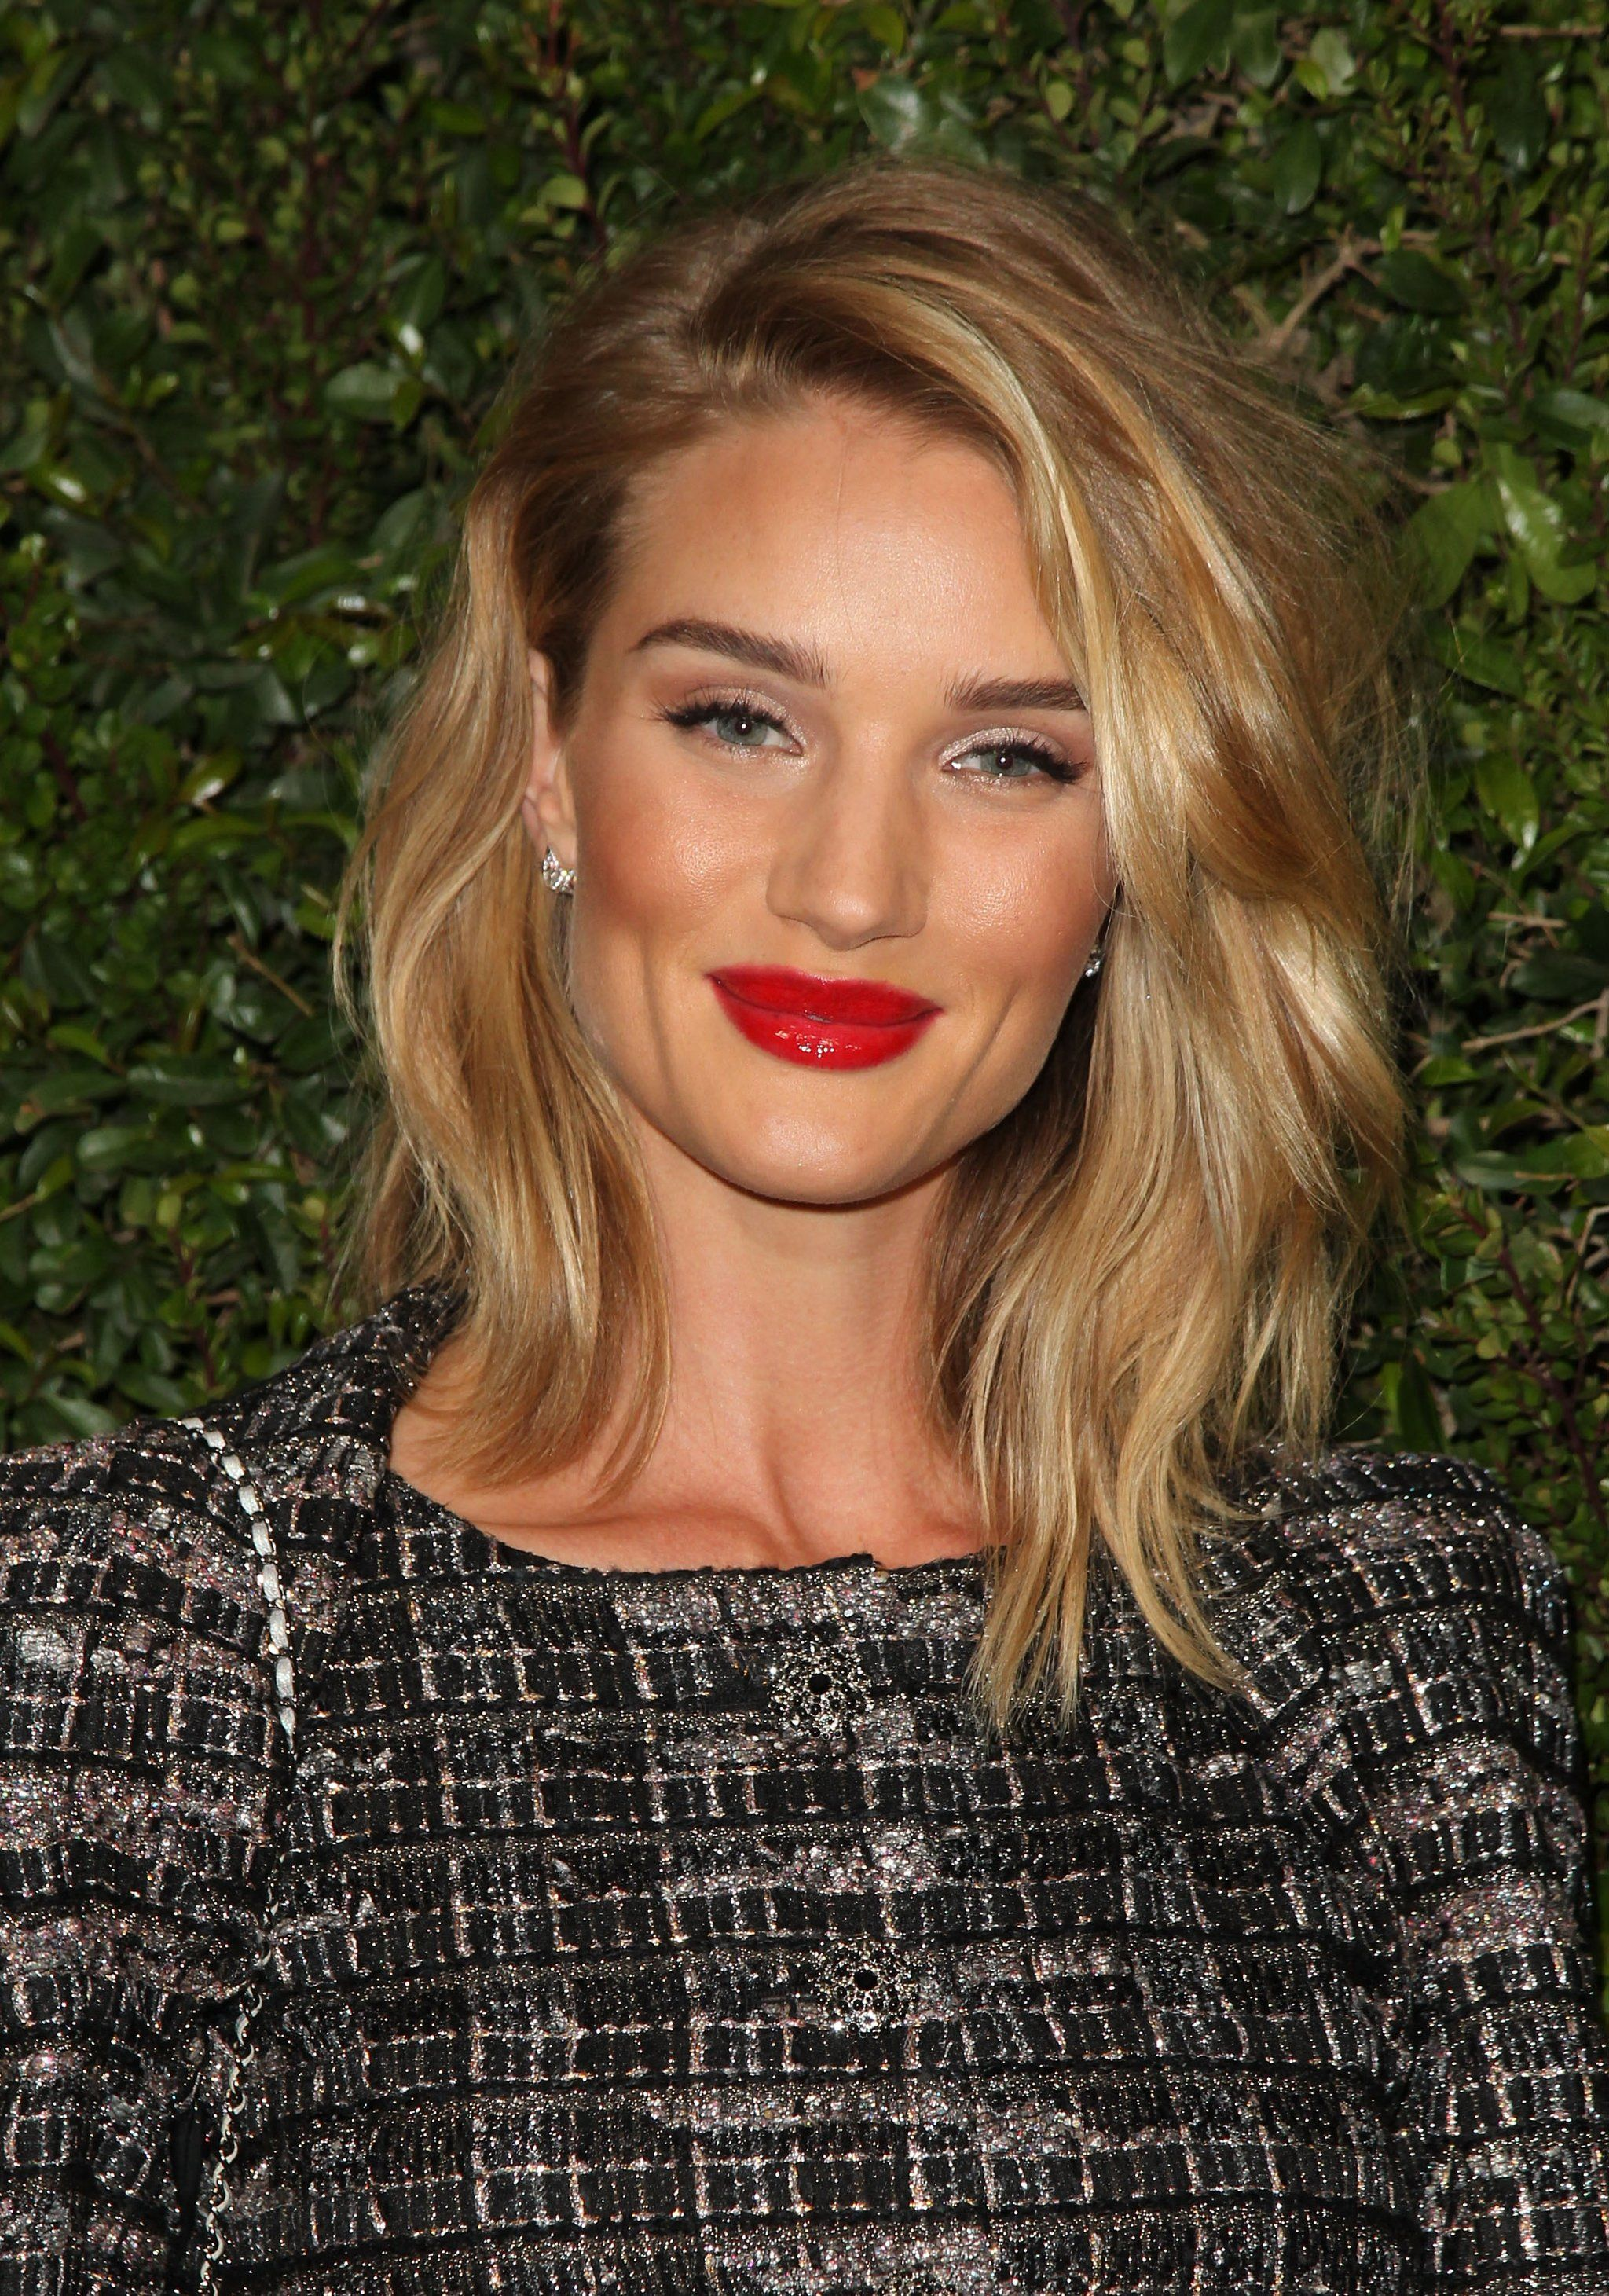 Photo of 19 Times We Desperately Wanted Rosie Huntington-Whiteley's Perfect Hair